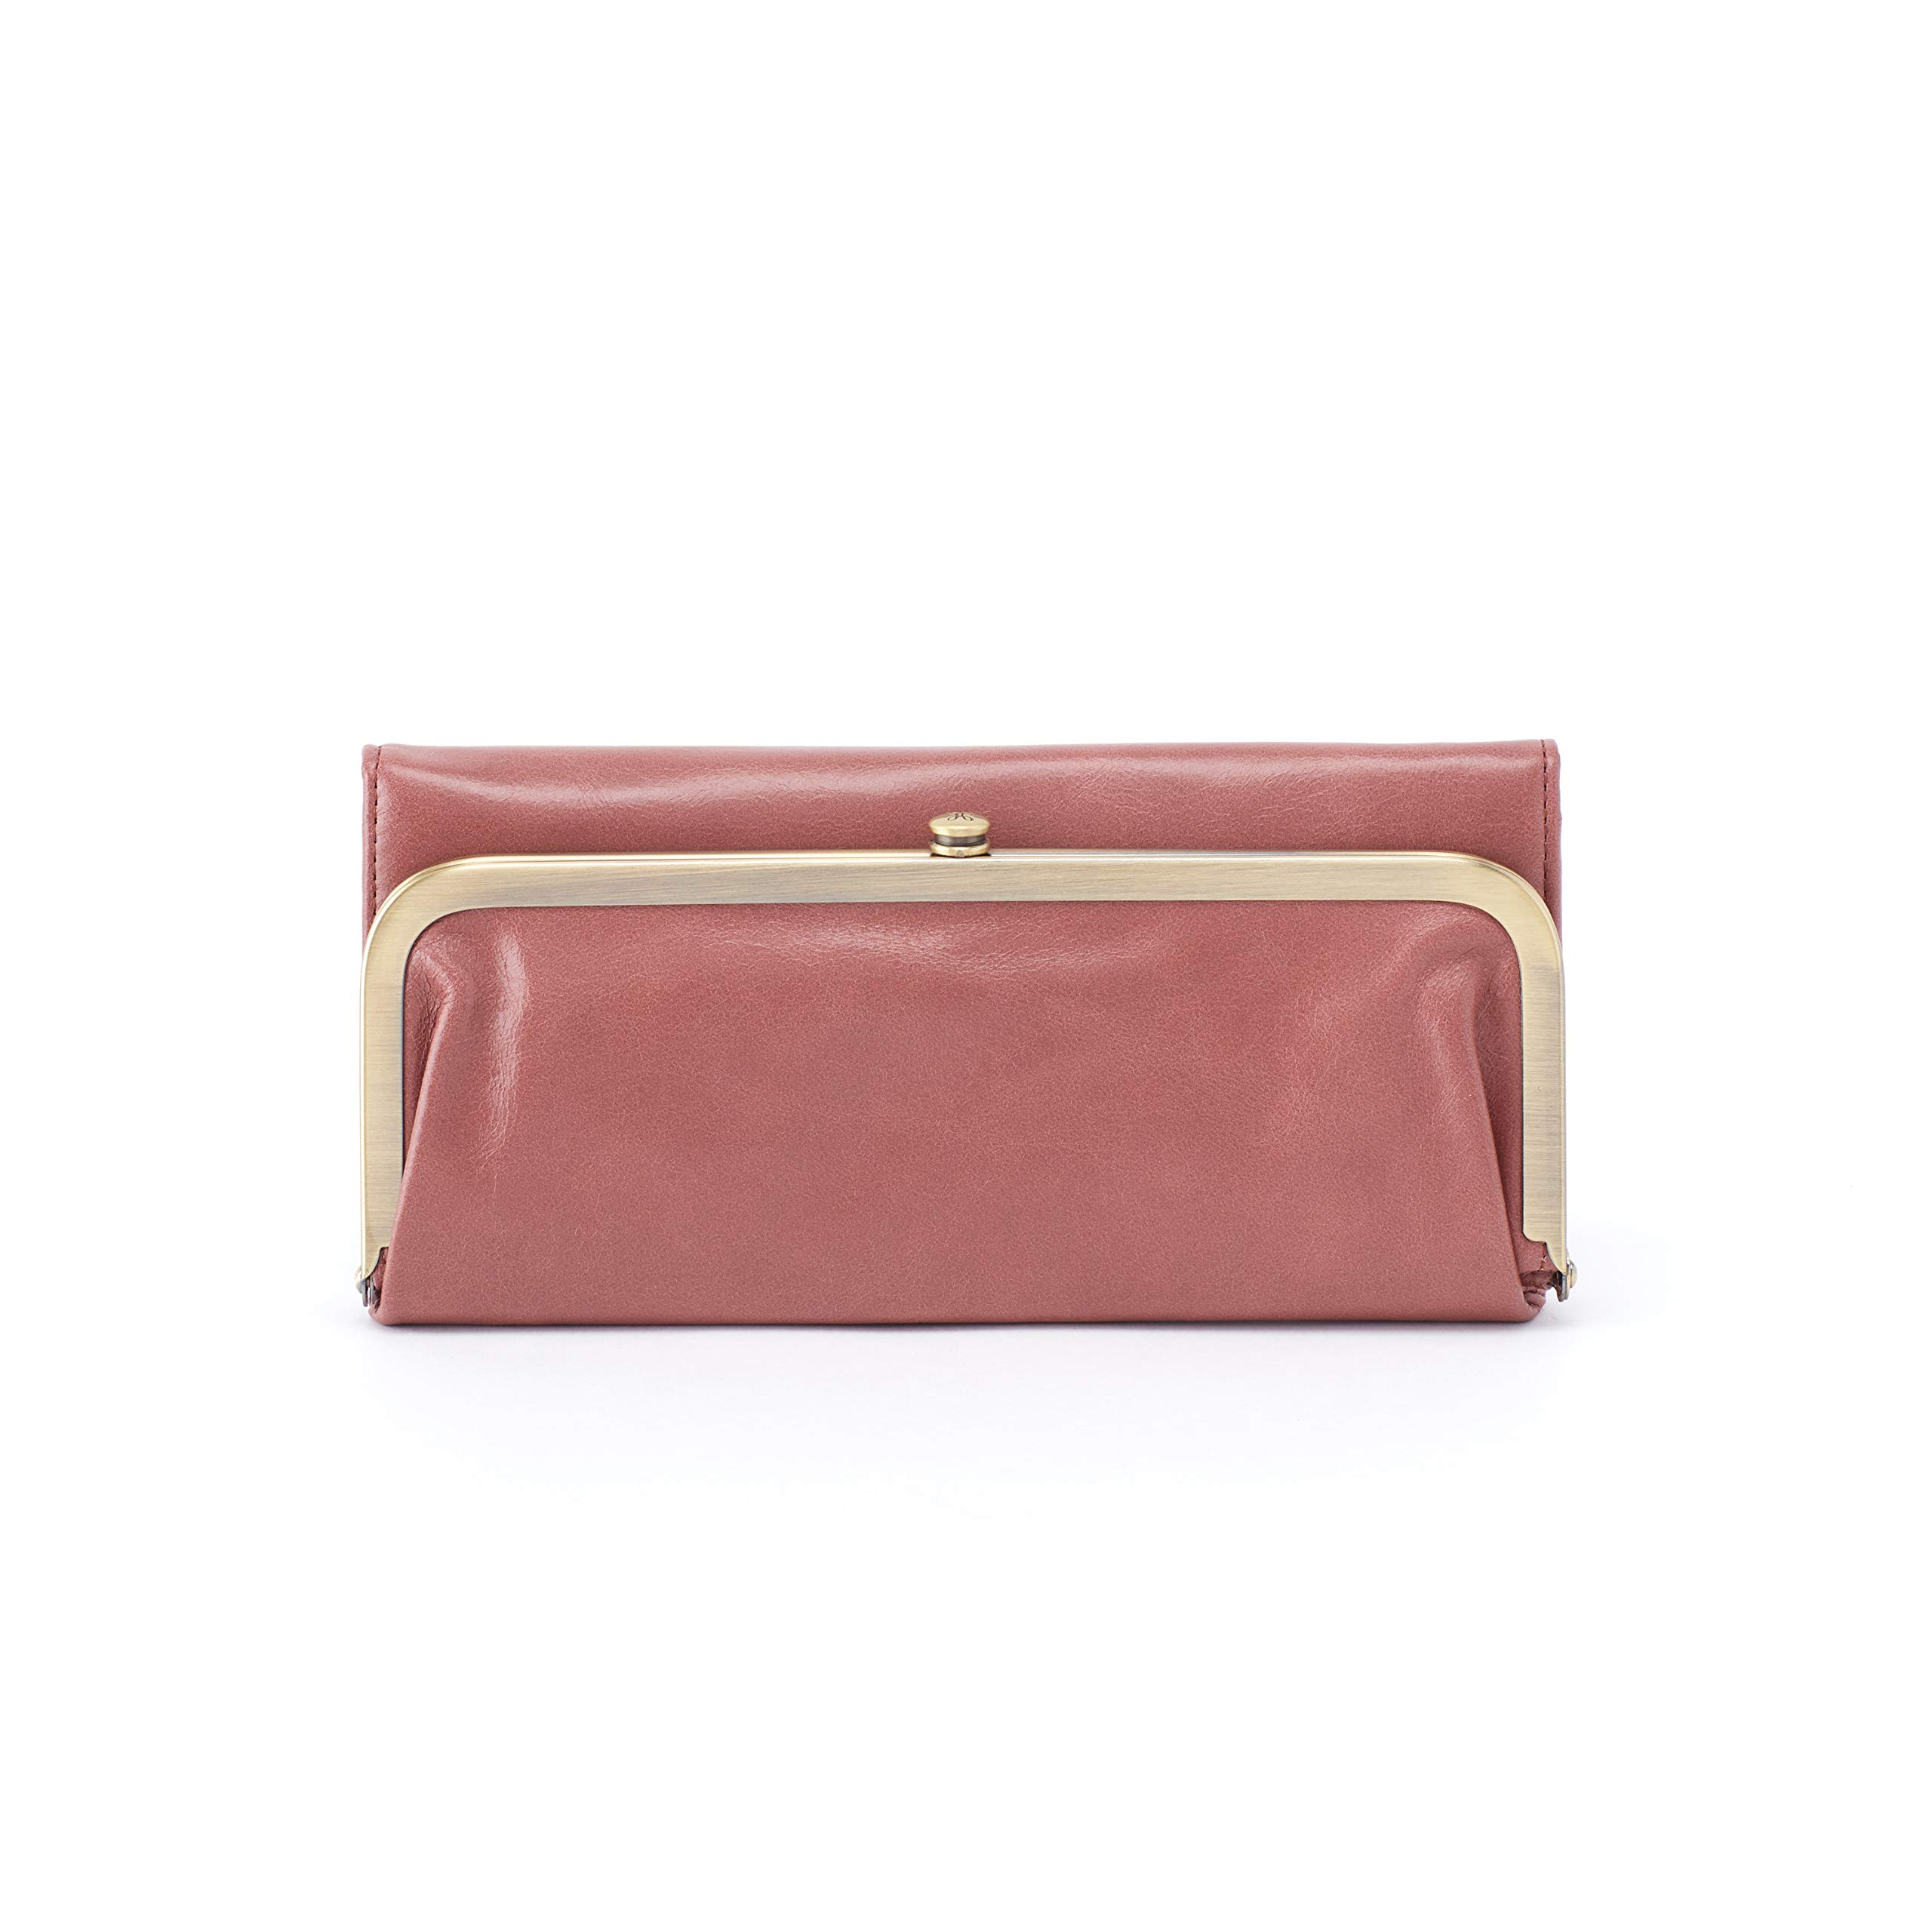 Hobo Womens Rachel Vintage Wallet Leather Clutch Purse (Burnished Rose)